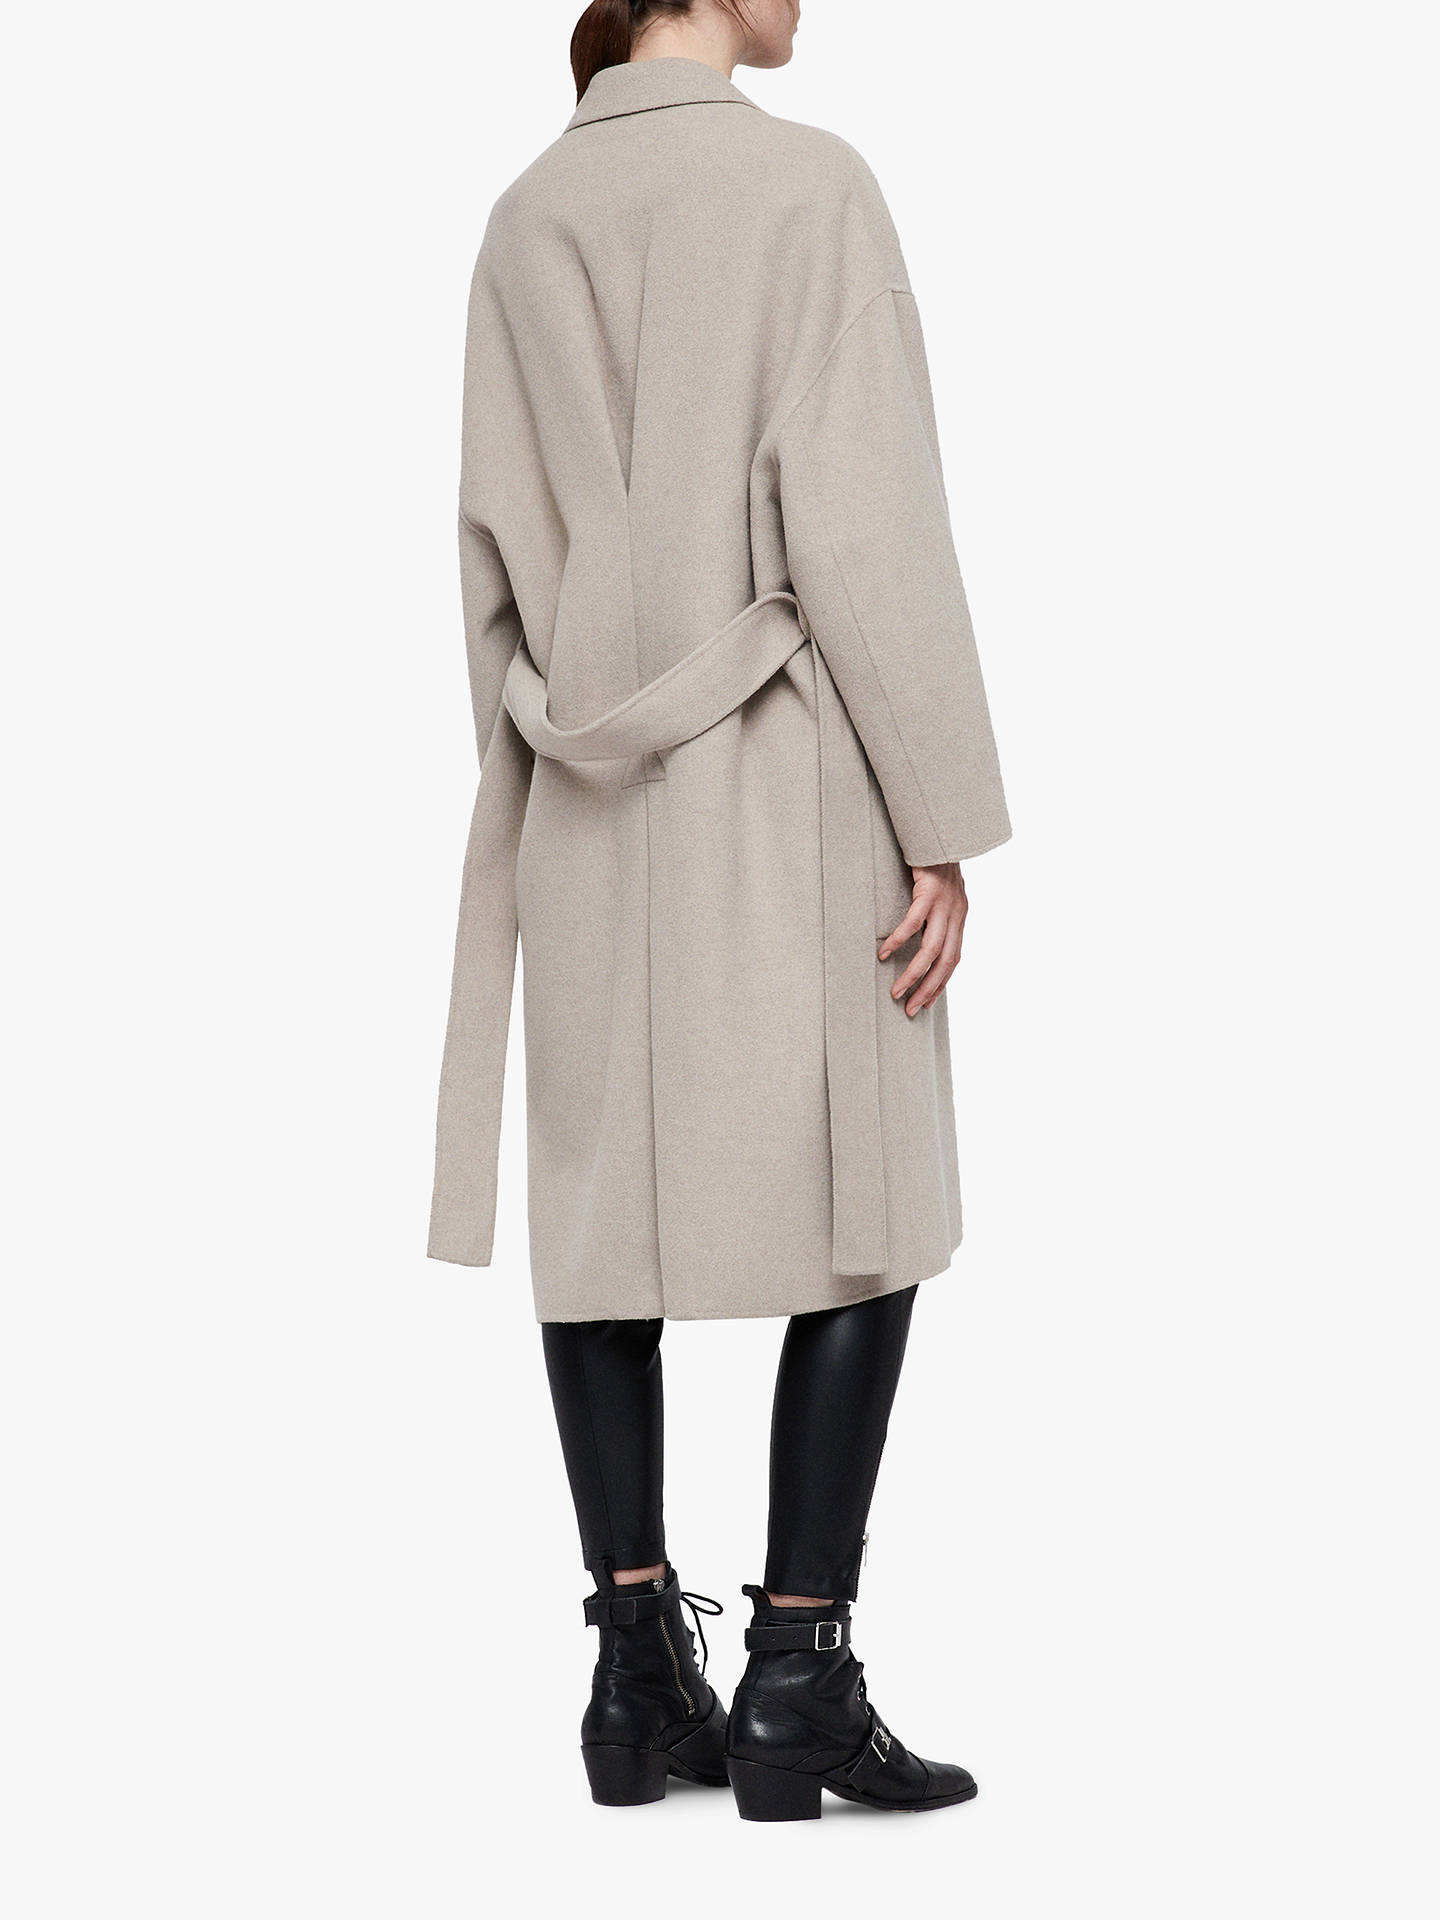 BuyAllSaints Lara Coat, Oatmeal Brown, L Online at johnlewis.com